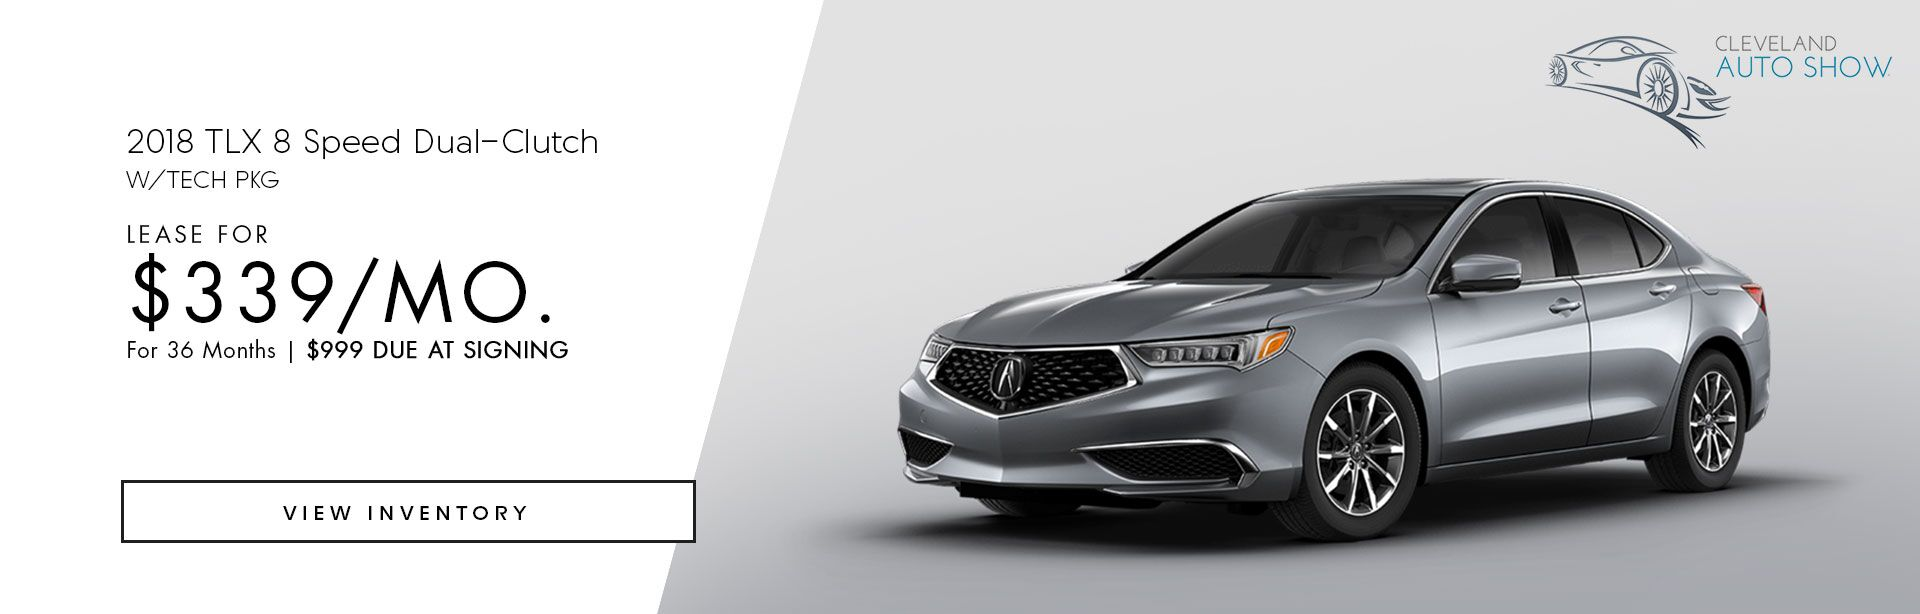 2018 Acura TLX 8 Speed Dual-Clutch